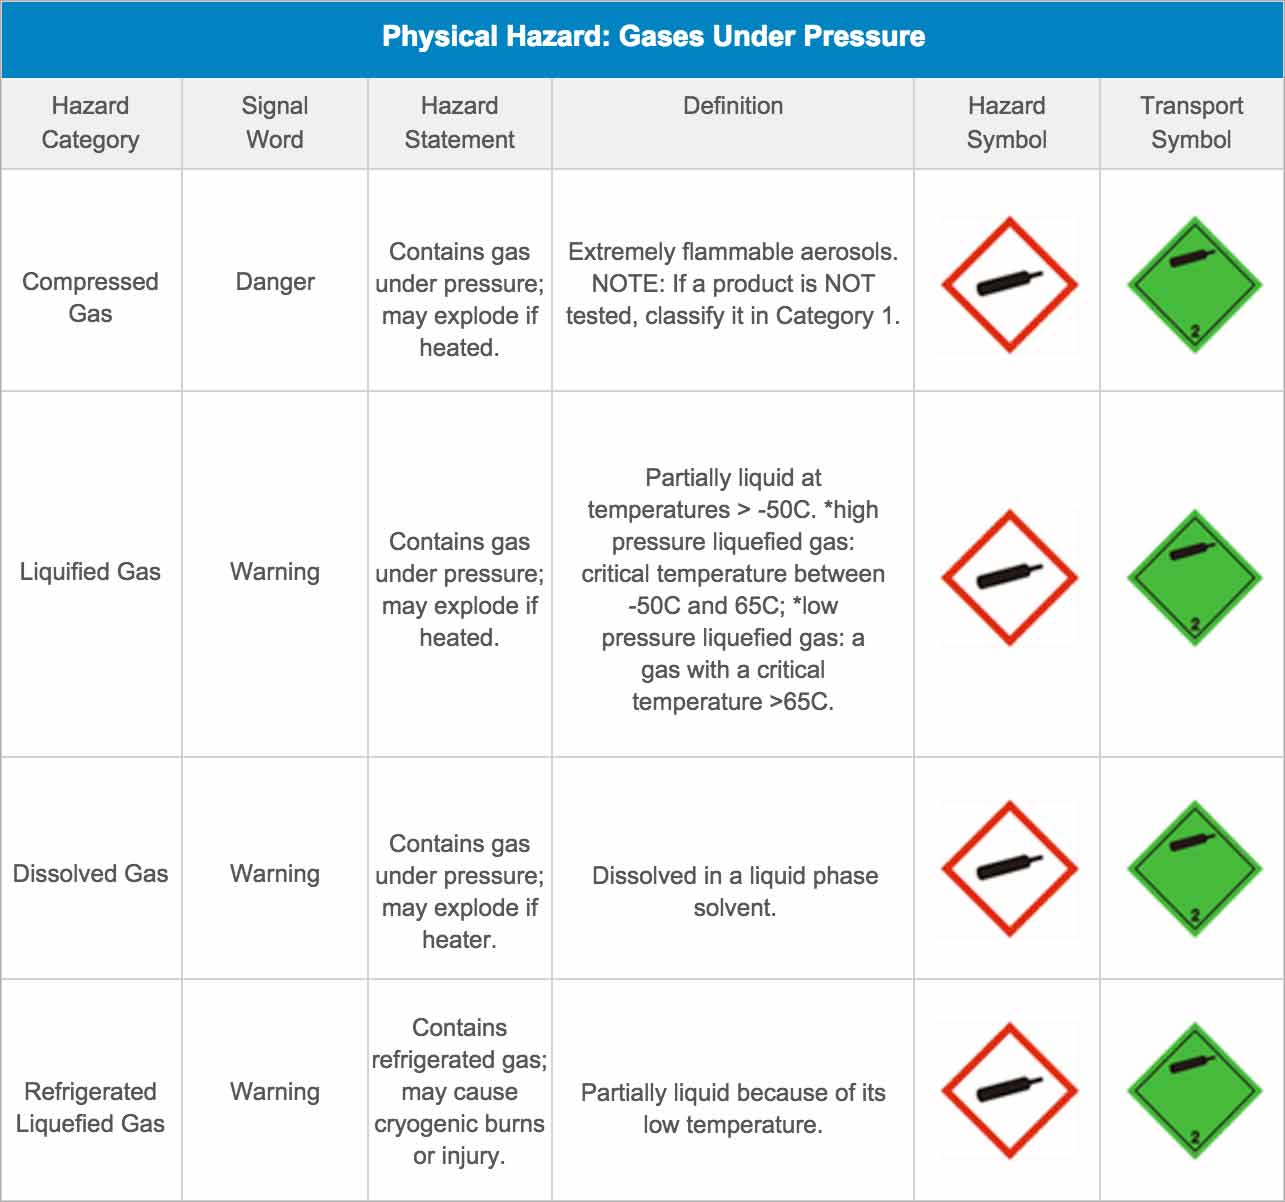 Physical Hazard: Gases Under Pressure